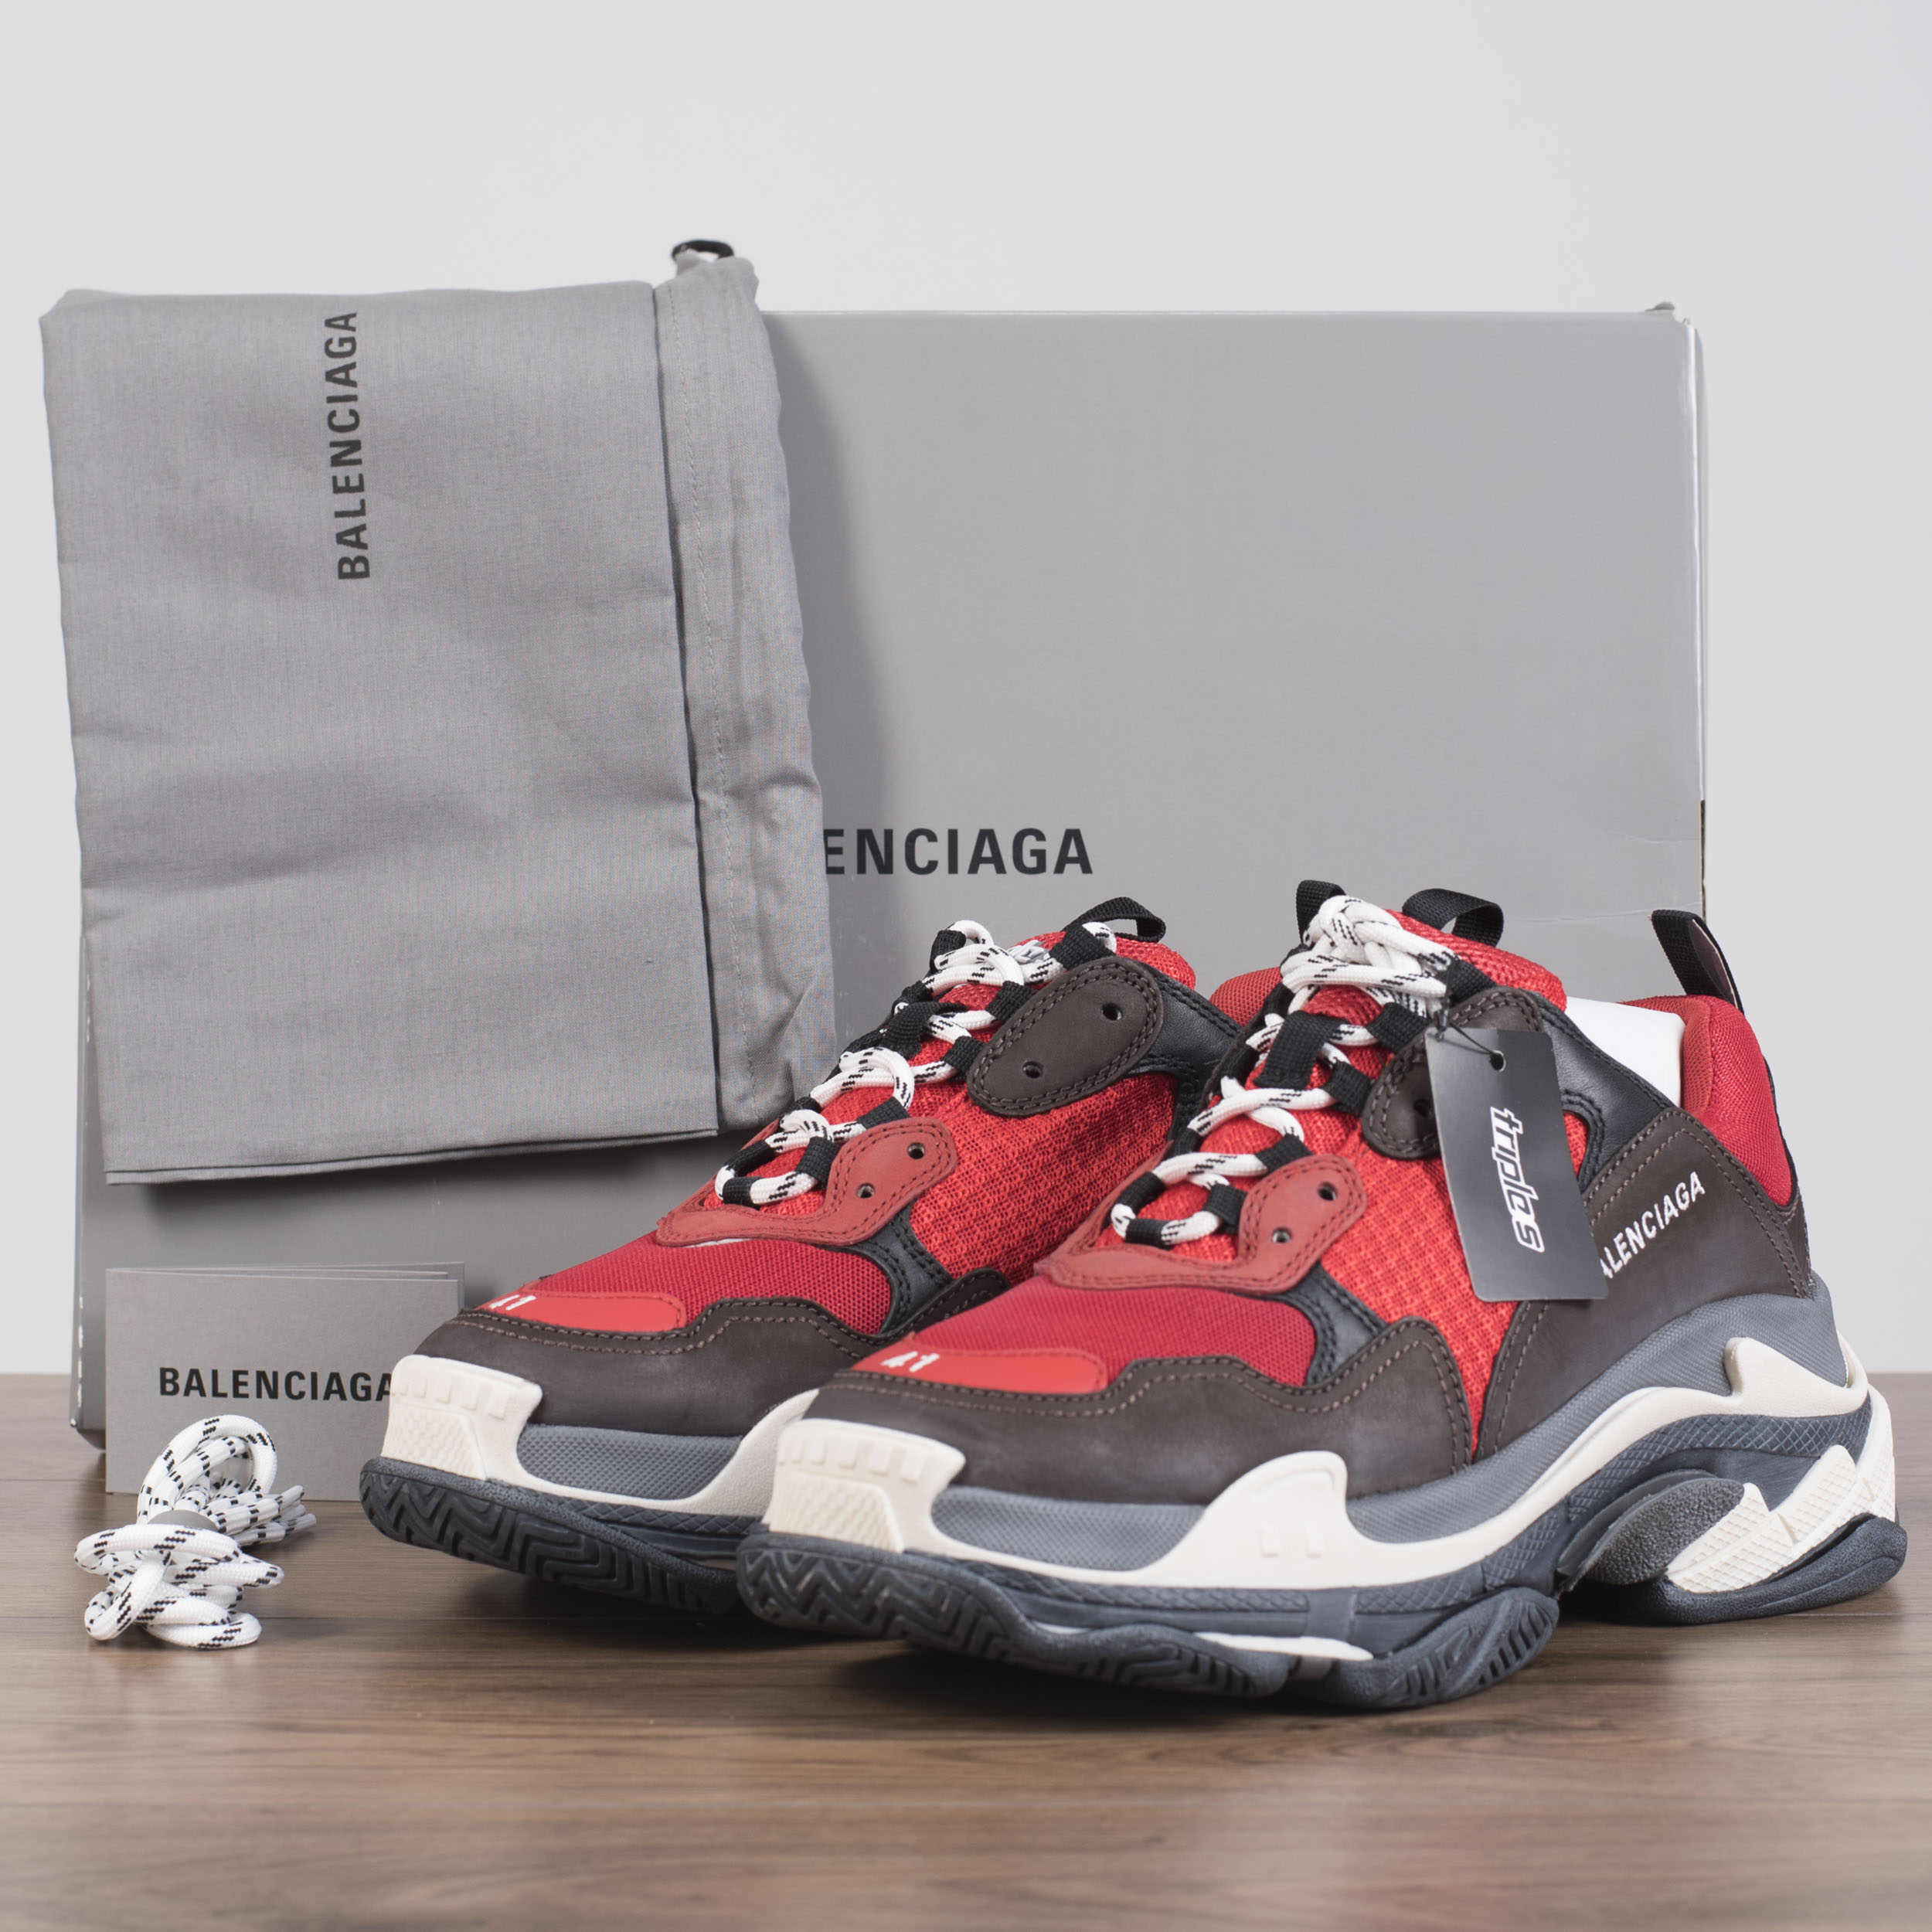 f3725f13845 Details about BALENCIAGA 950  Authentic New Triple S Sneakers In Black